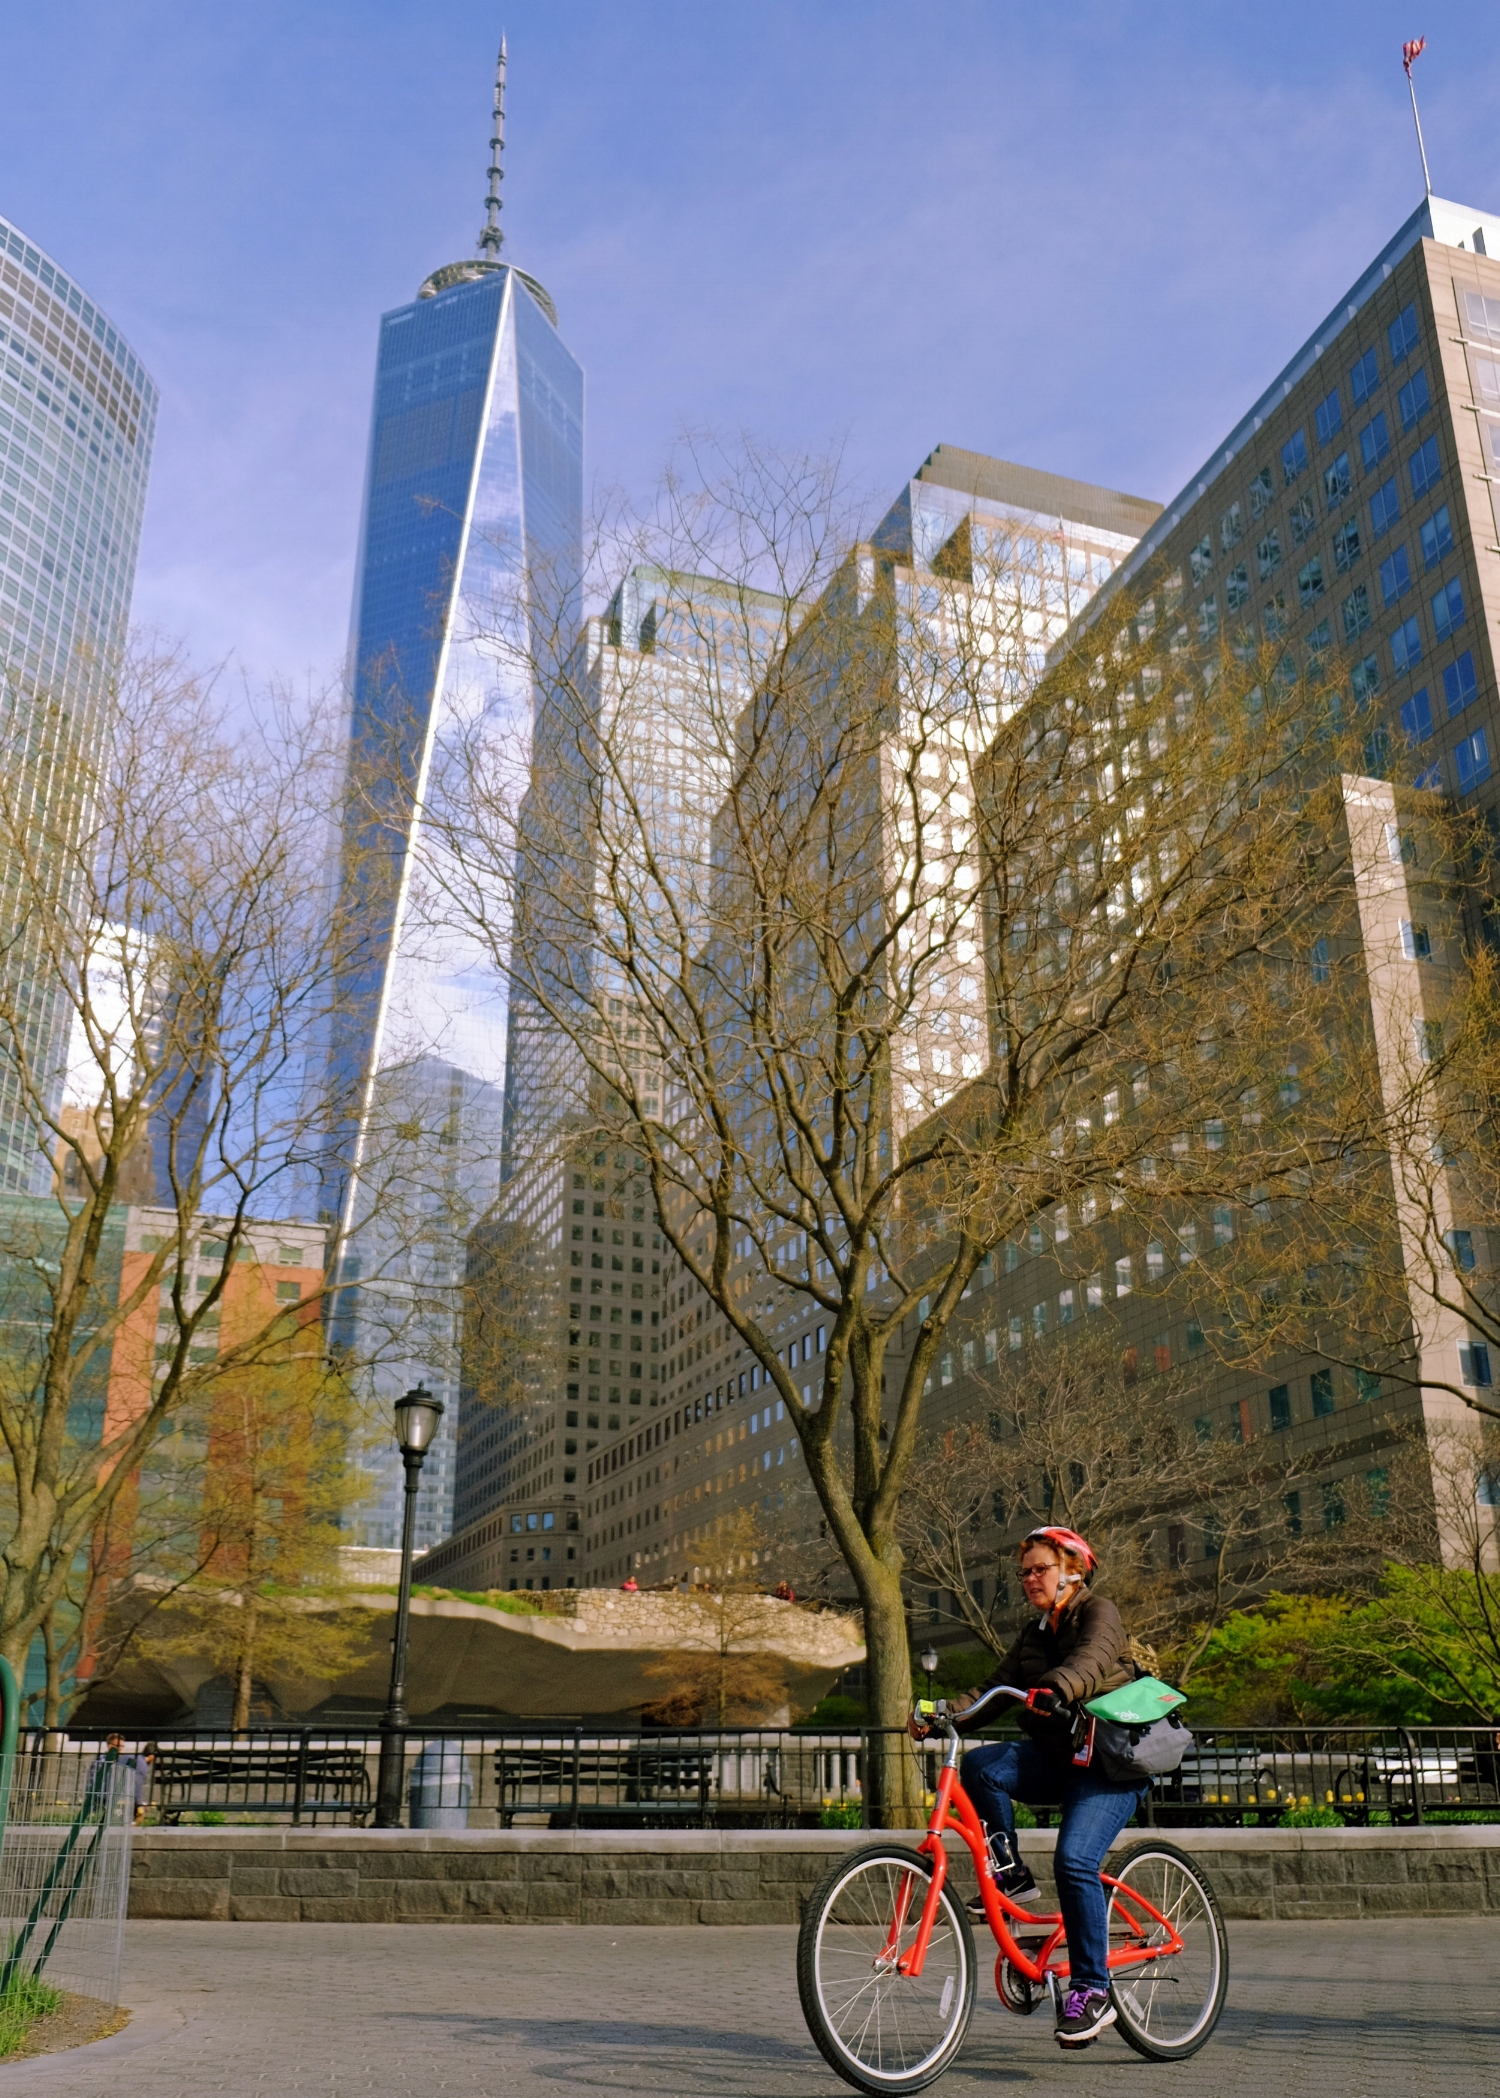 Biking by the Irish Famine Memorial and Freedom Tower. Photo by Kyle Ramey of Bikabout.com